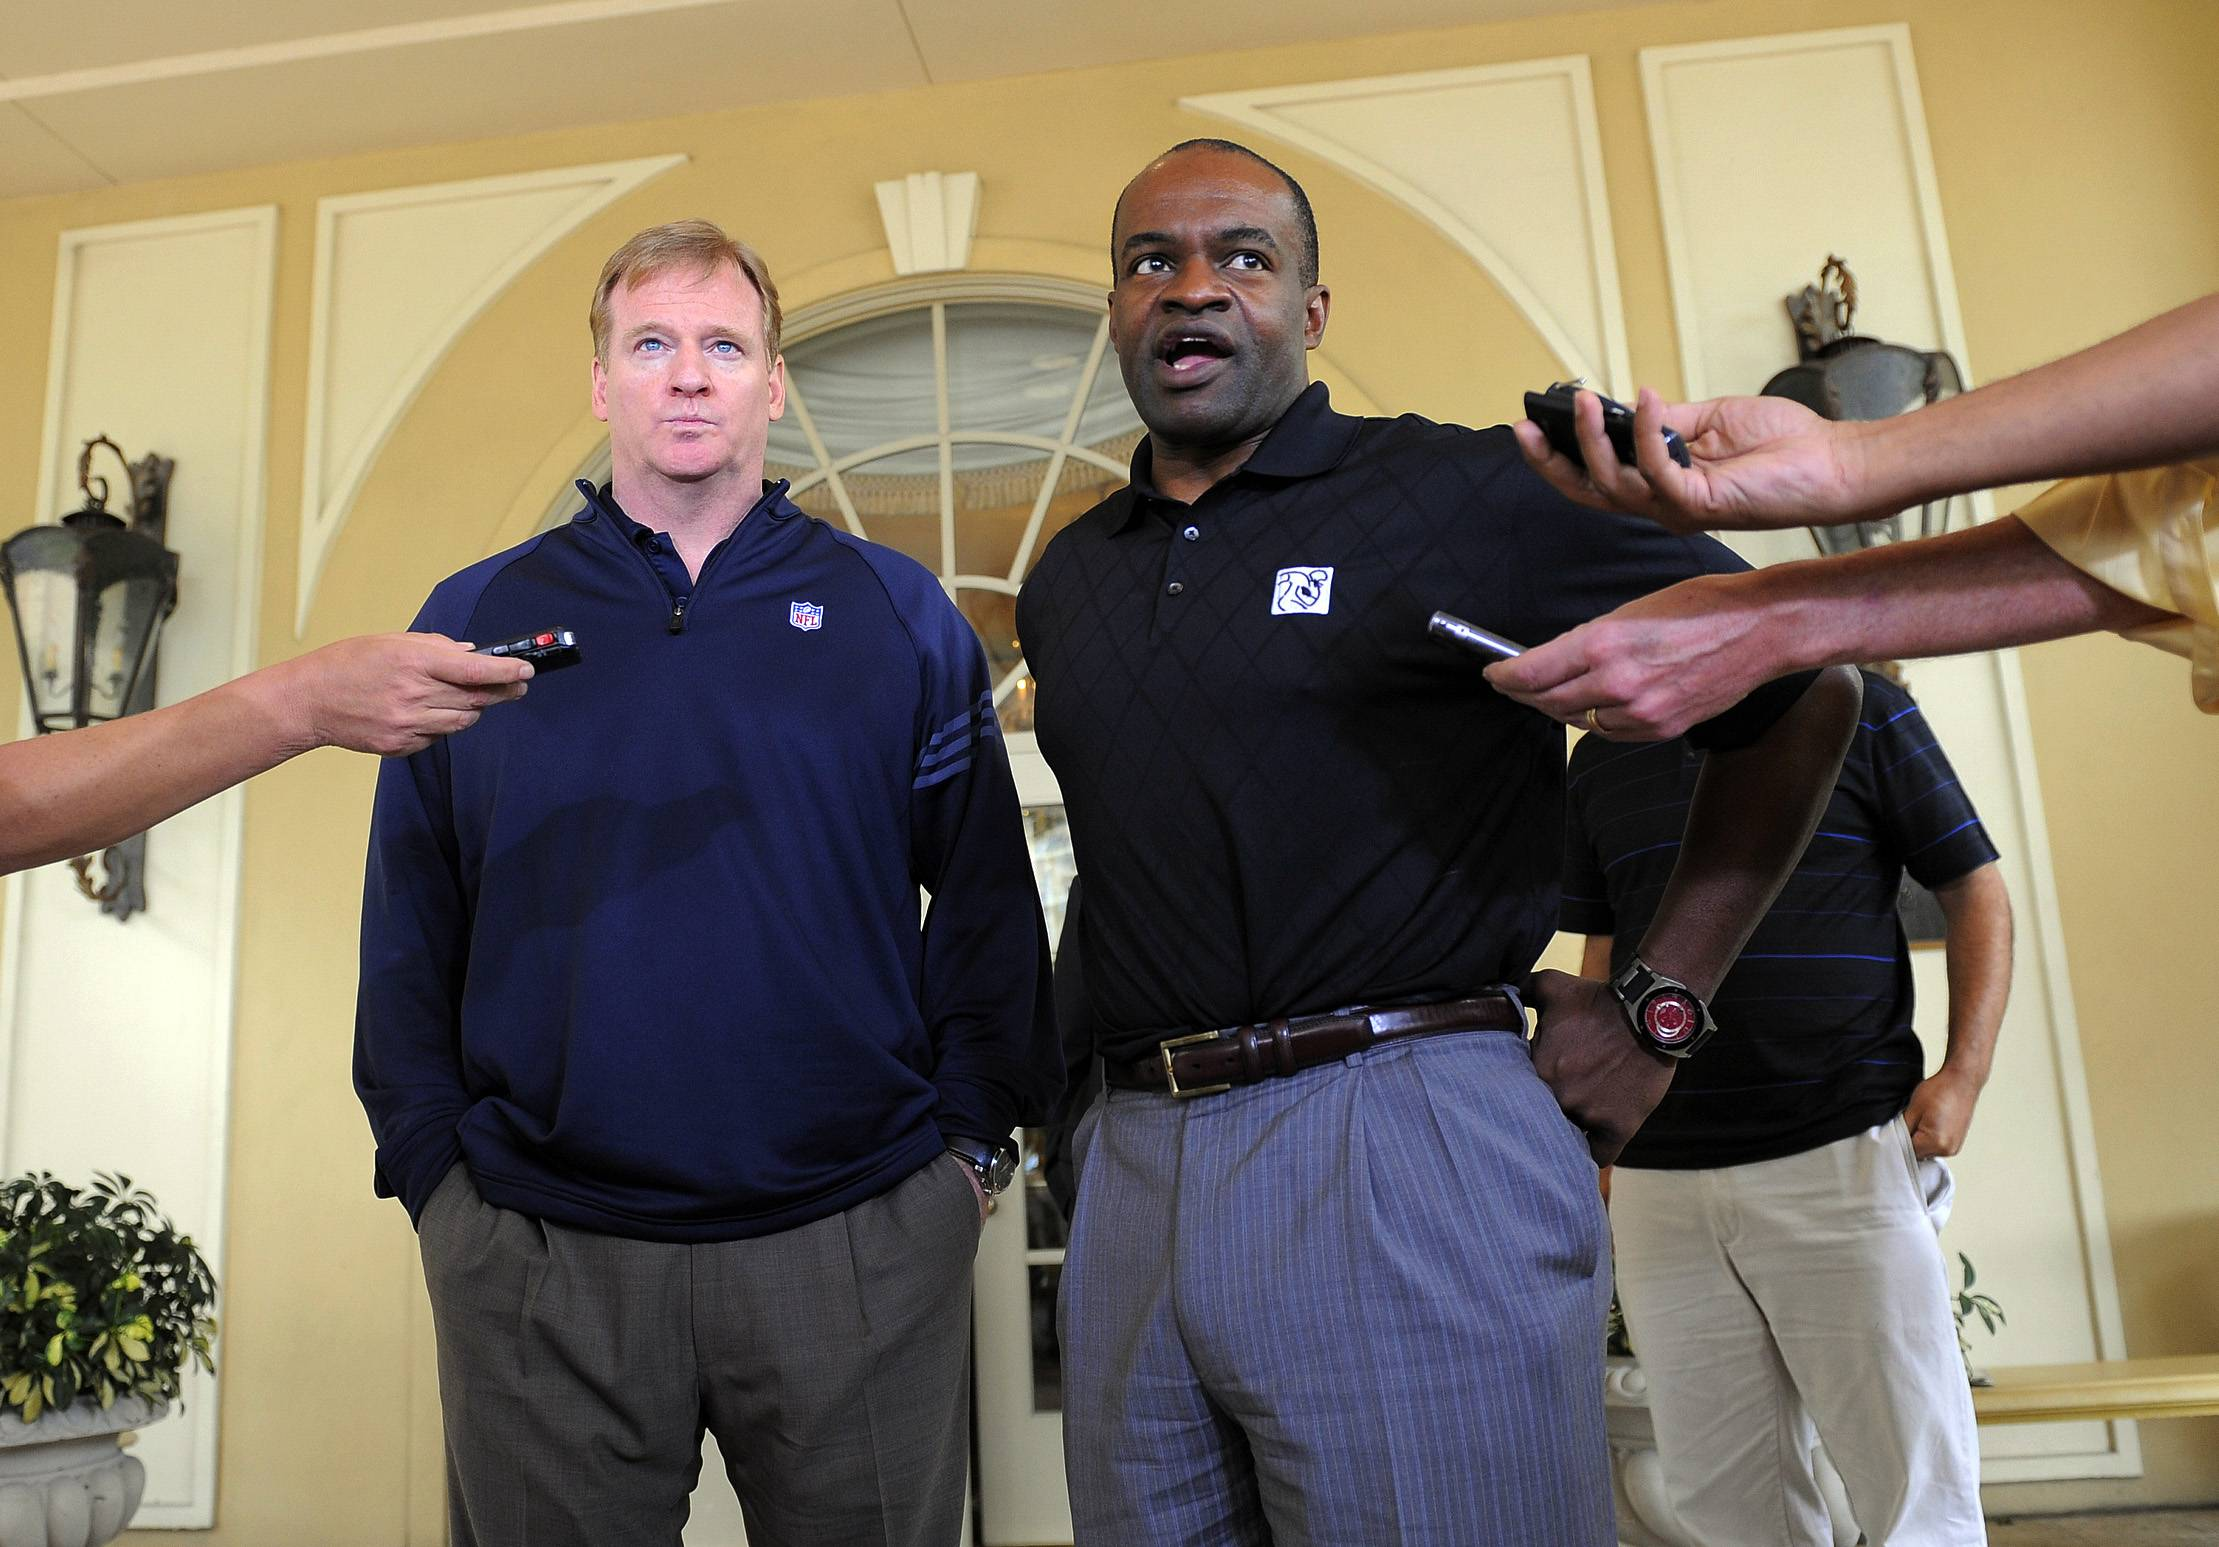 NFL commissioner Roger Goodell, left, and National Football League Players Association executive director DeMaurice Smith, right, speak to the media outside of the Ritz-Carlton hotel after addressing players during the NFLPA rookie symposium on Wednesday in Sarasota, Fla.